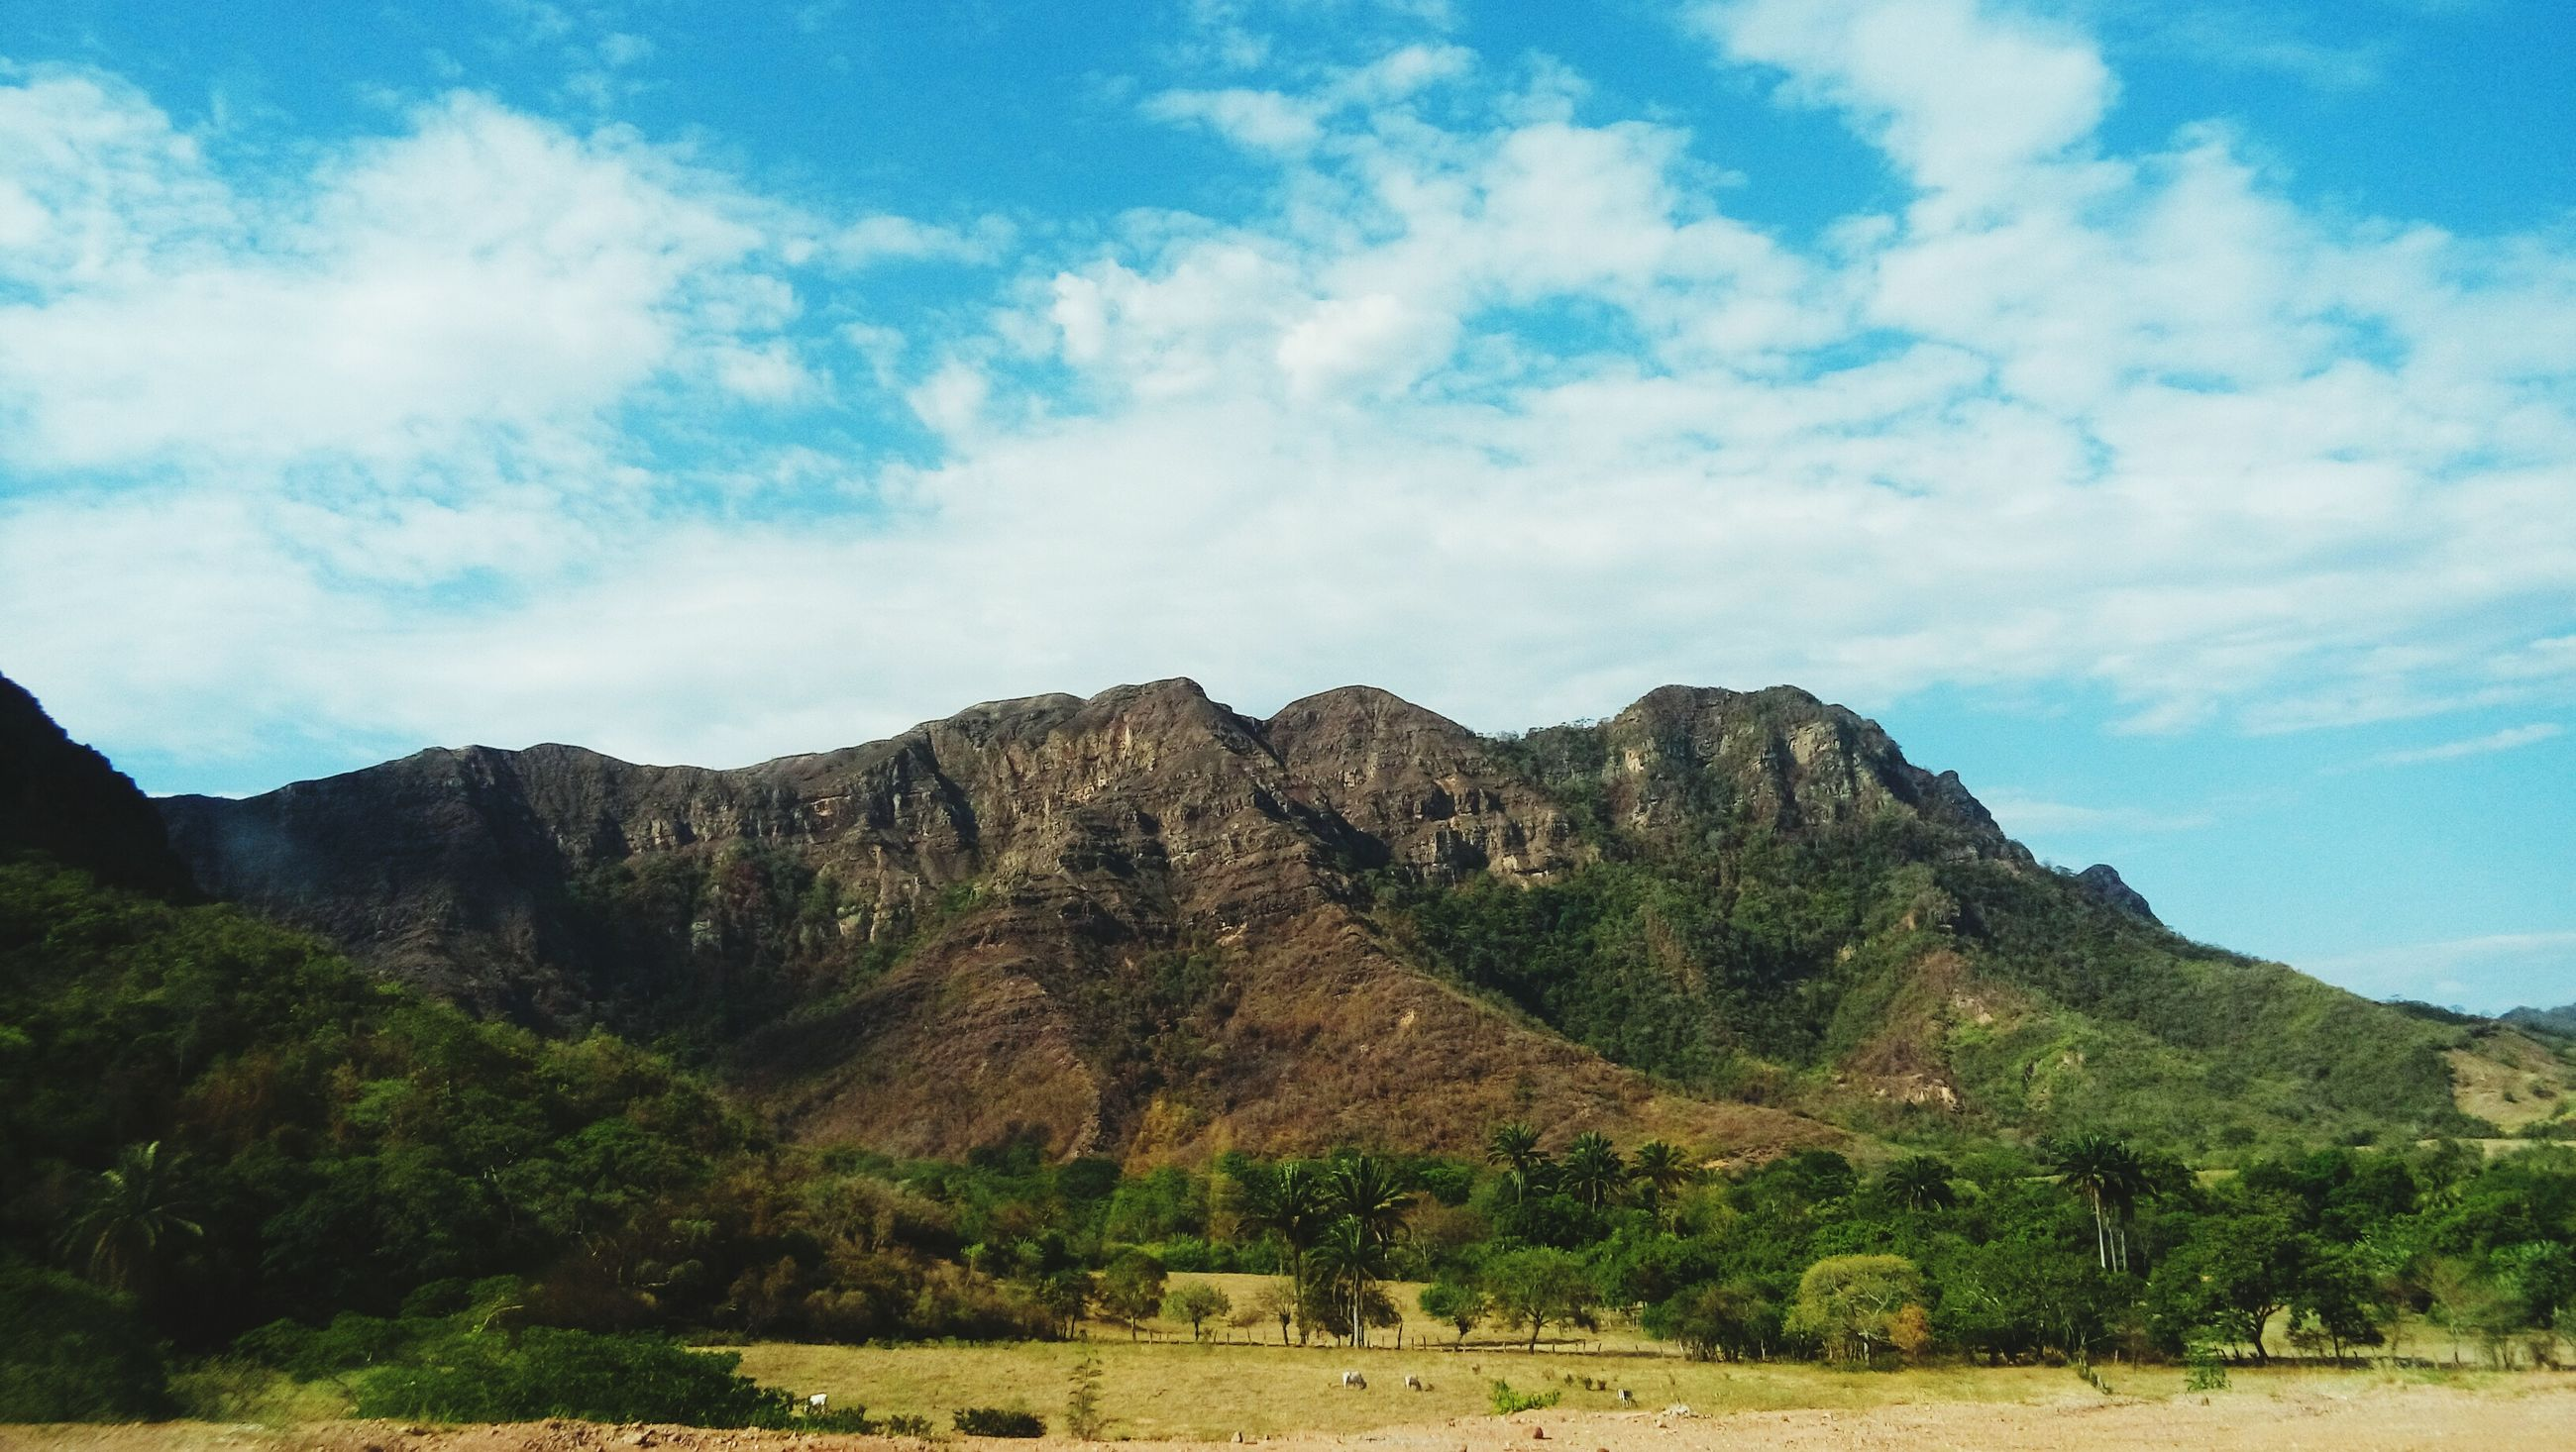 mountain, sky, tranquil scene, tranquility, scenics, mountain range, landscape, beauty in nature, cloud - sky, nature, cloud, non-urban scene, tree, blue, idyllic, remote, day, hill, outdoors, cloudy